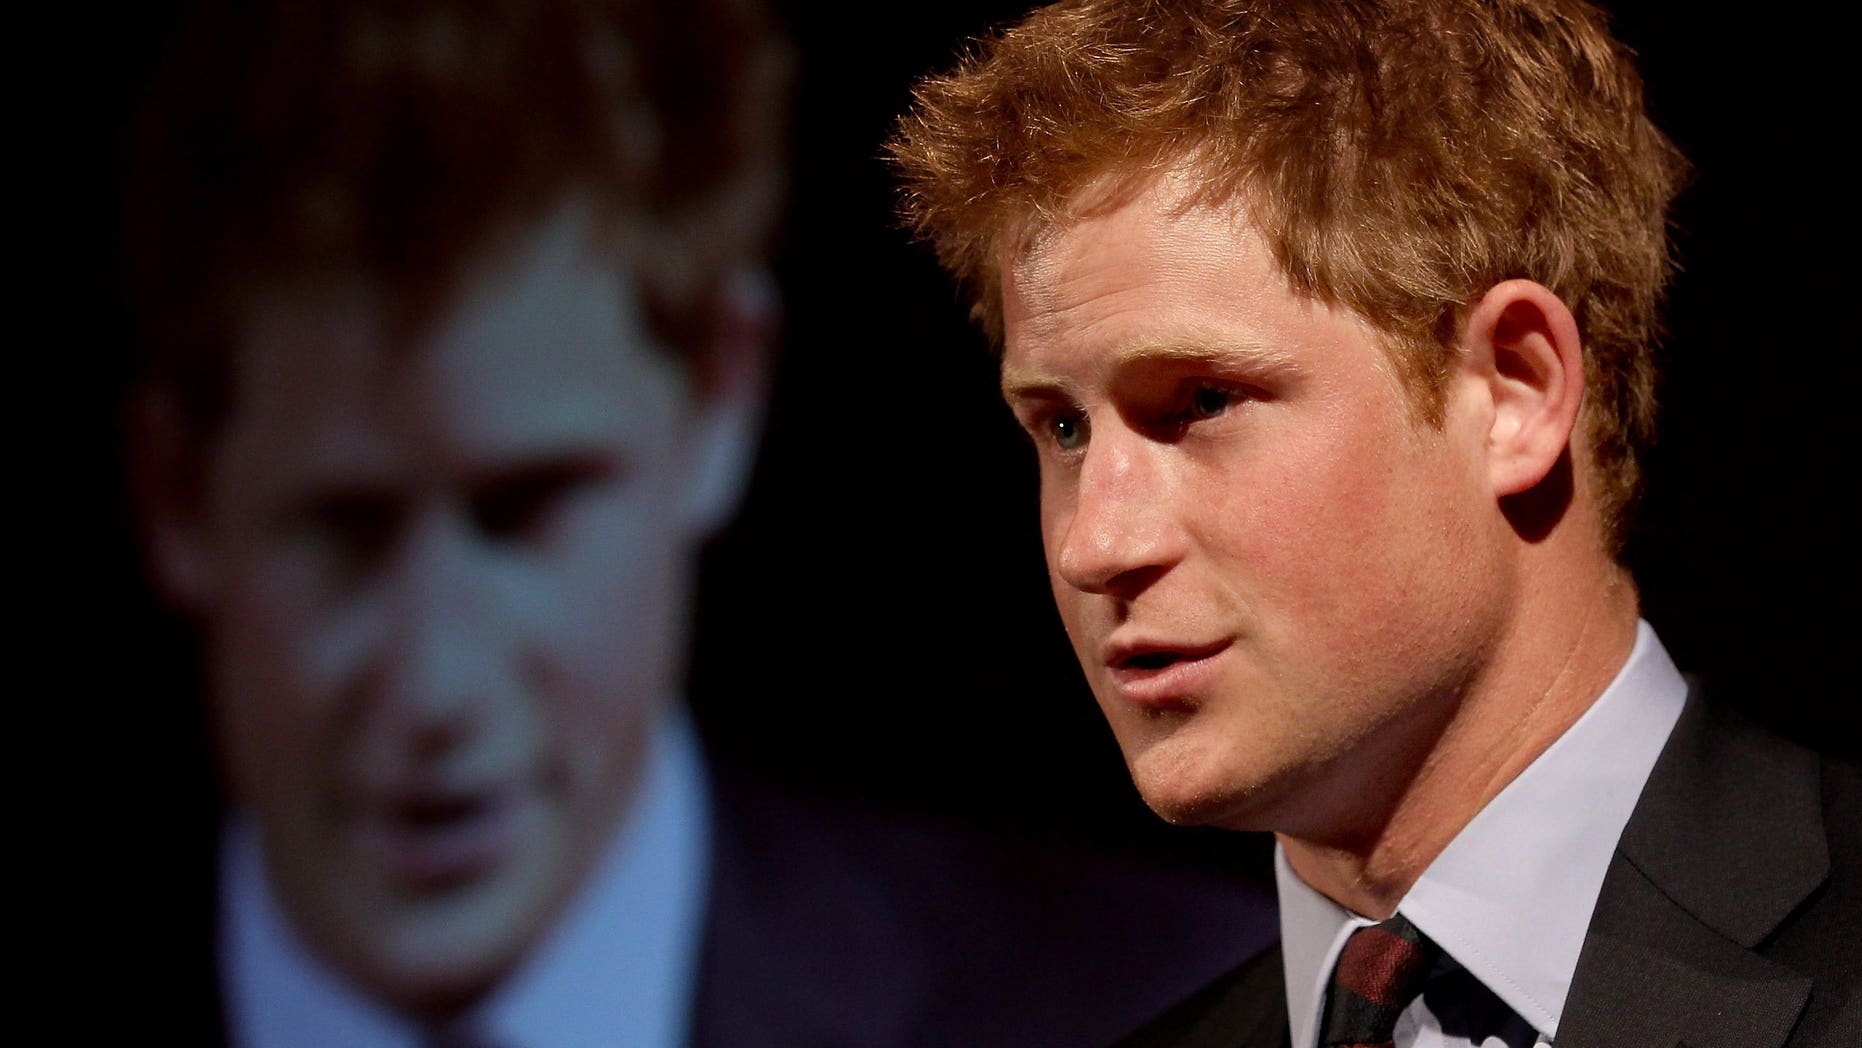 Britain's Prince Harry makes a speech at the Friends of the Forces Awards in London on July 13, 2010. The royal will visit Australia next month for events in Sydney marking the Royal Australian Navy's centenary of service, Australian Prime Minister Tony Abbott has said.